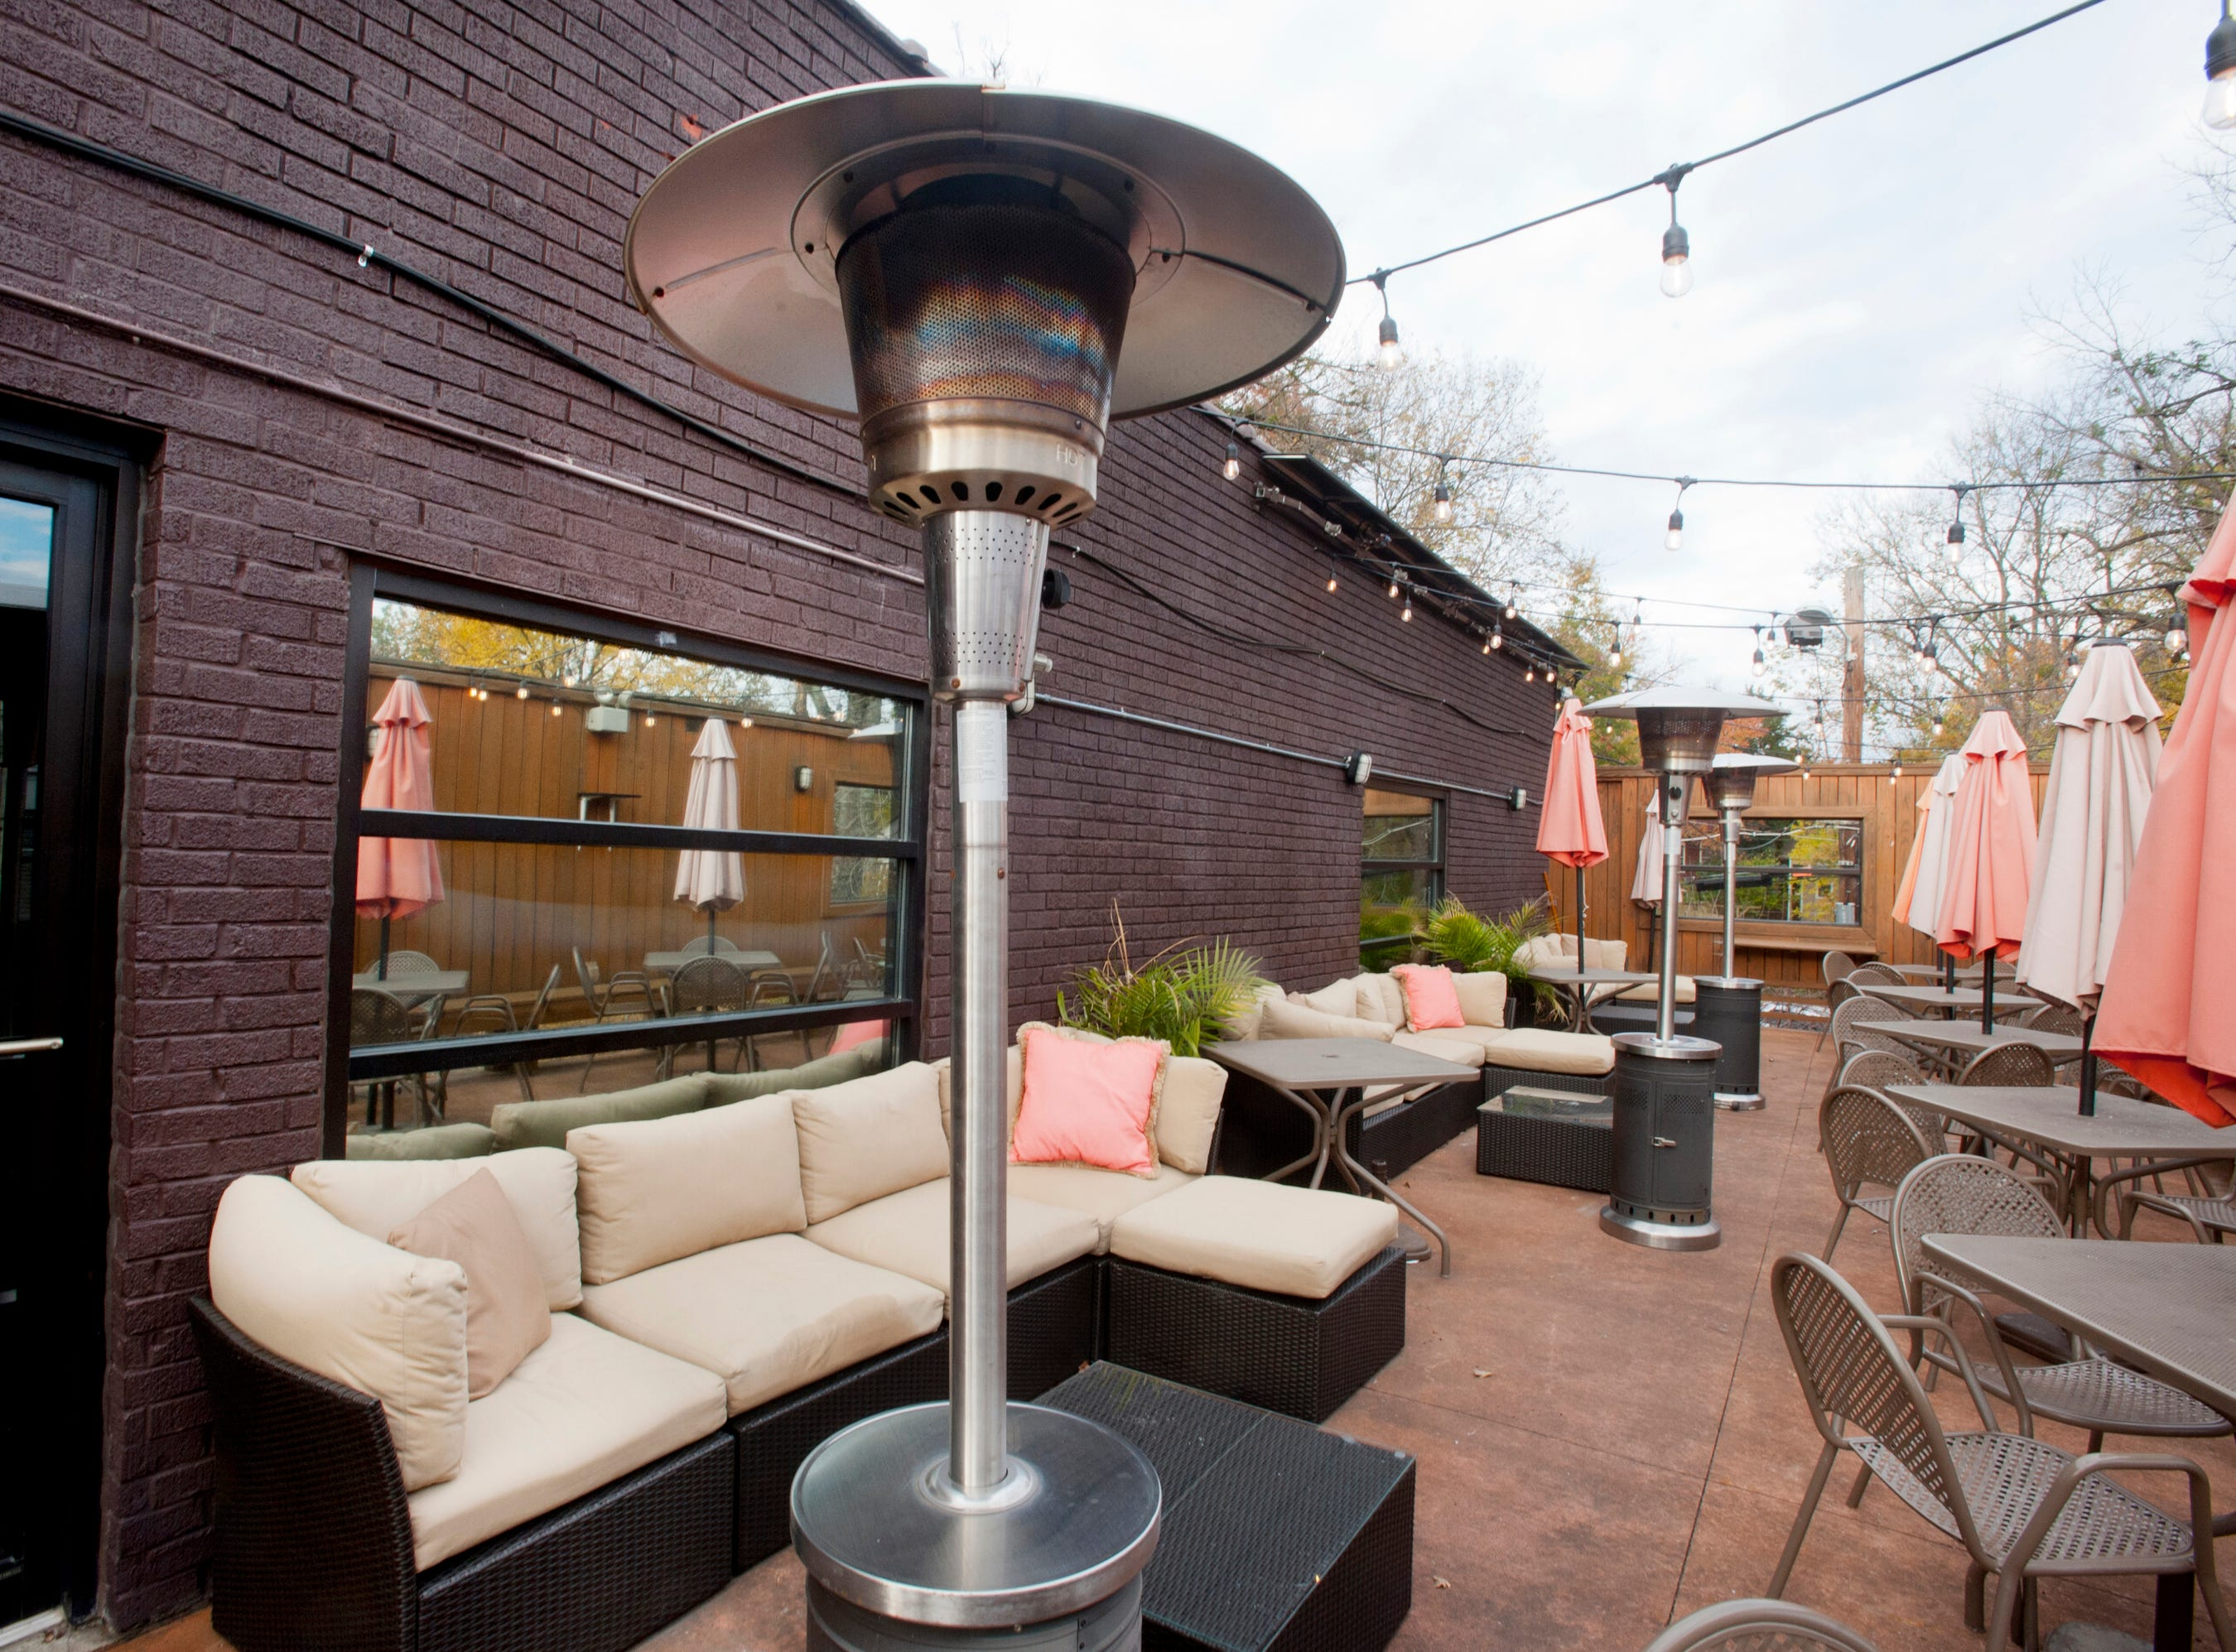 The terrace area of the Flavour Restaurant and Lounge on Bardstown Road.November 08, 2018